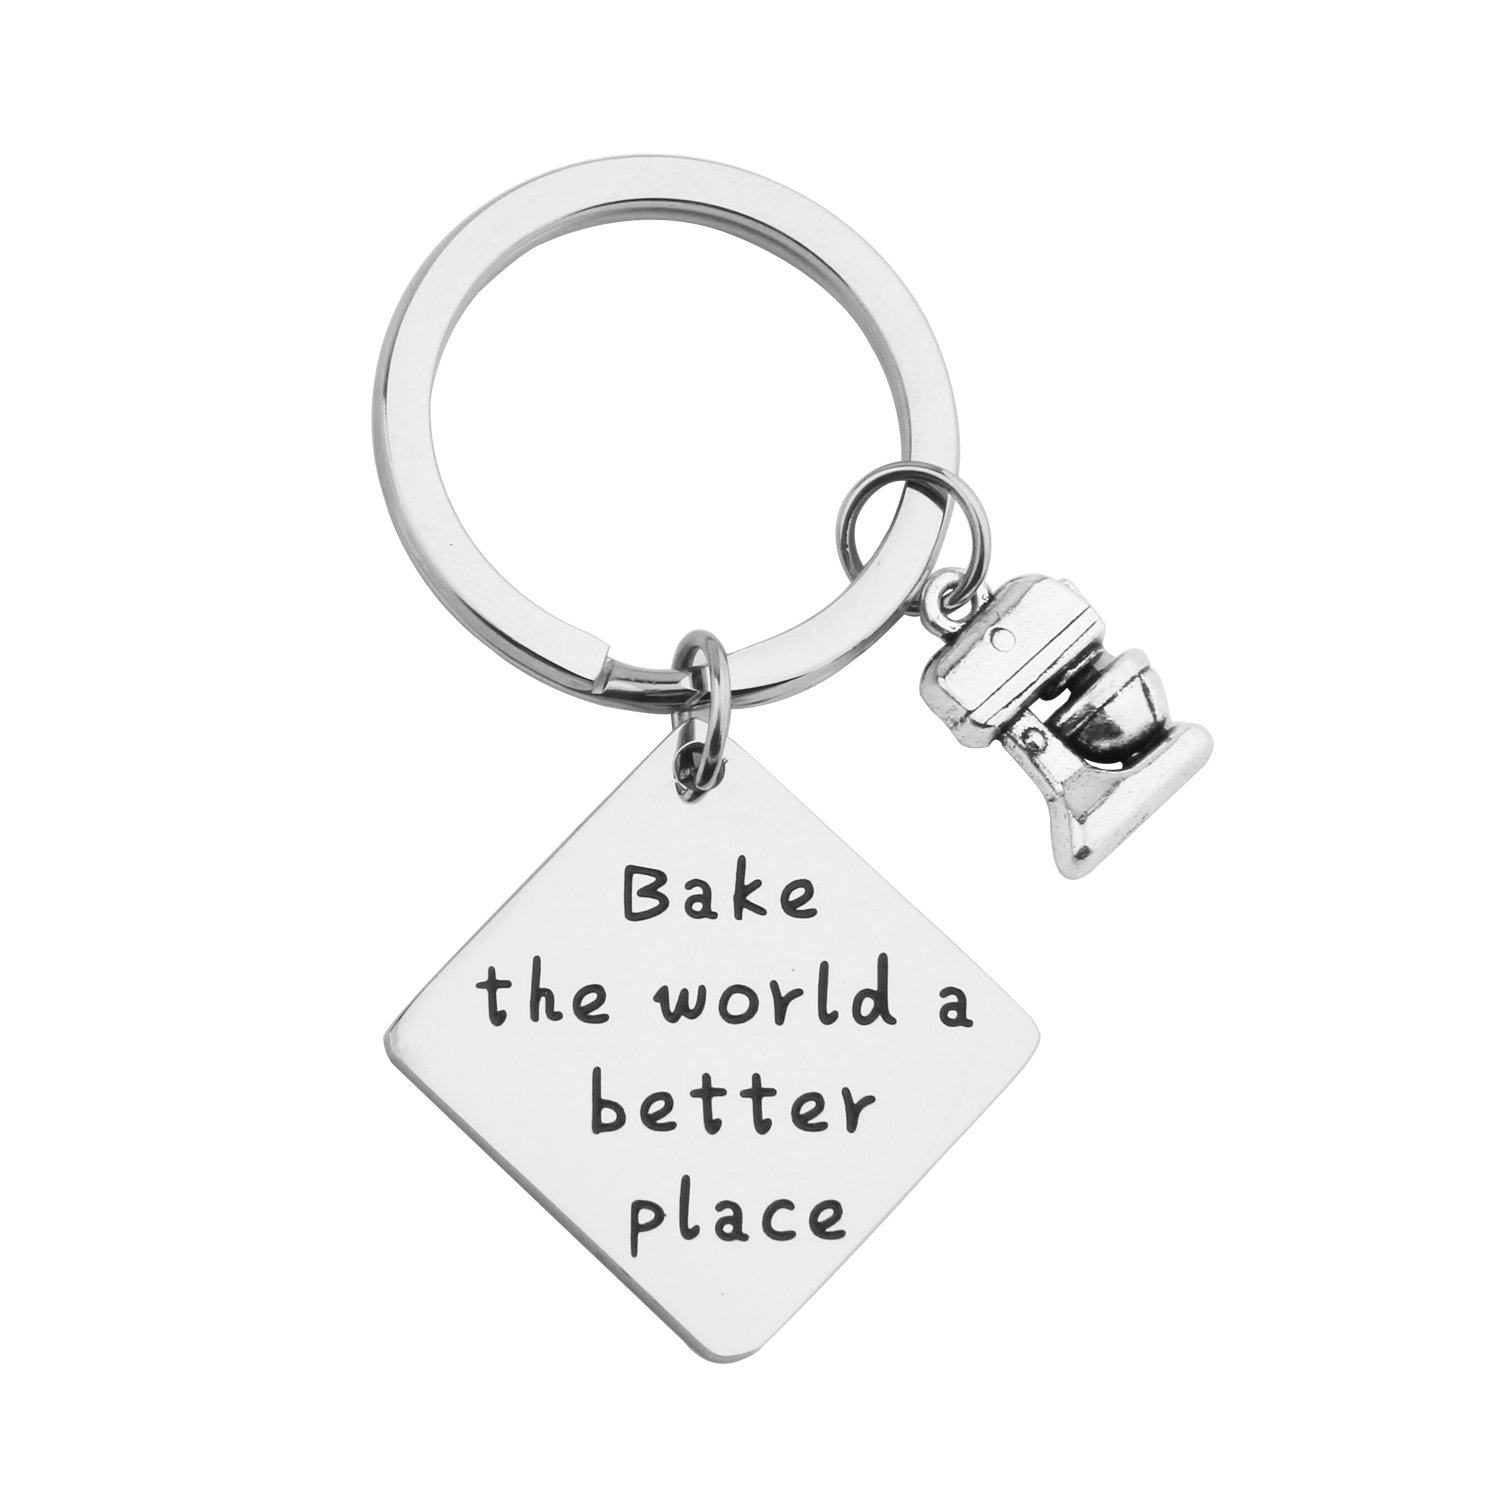 MAOFAED Gift for Baker Bake the World a Better Place Culinary Student Gifts Bake Lover Keychain Gift (KR-Baker Keychain)